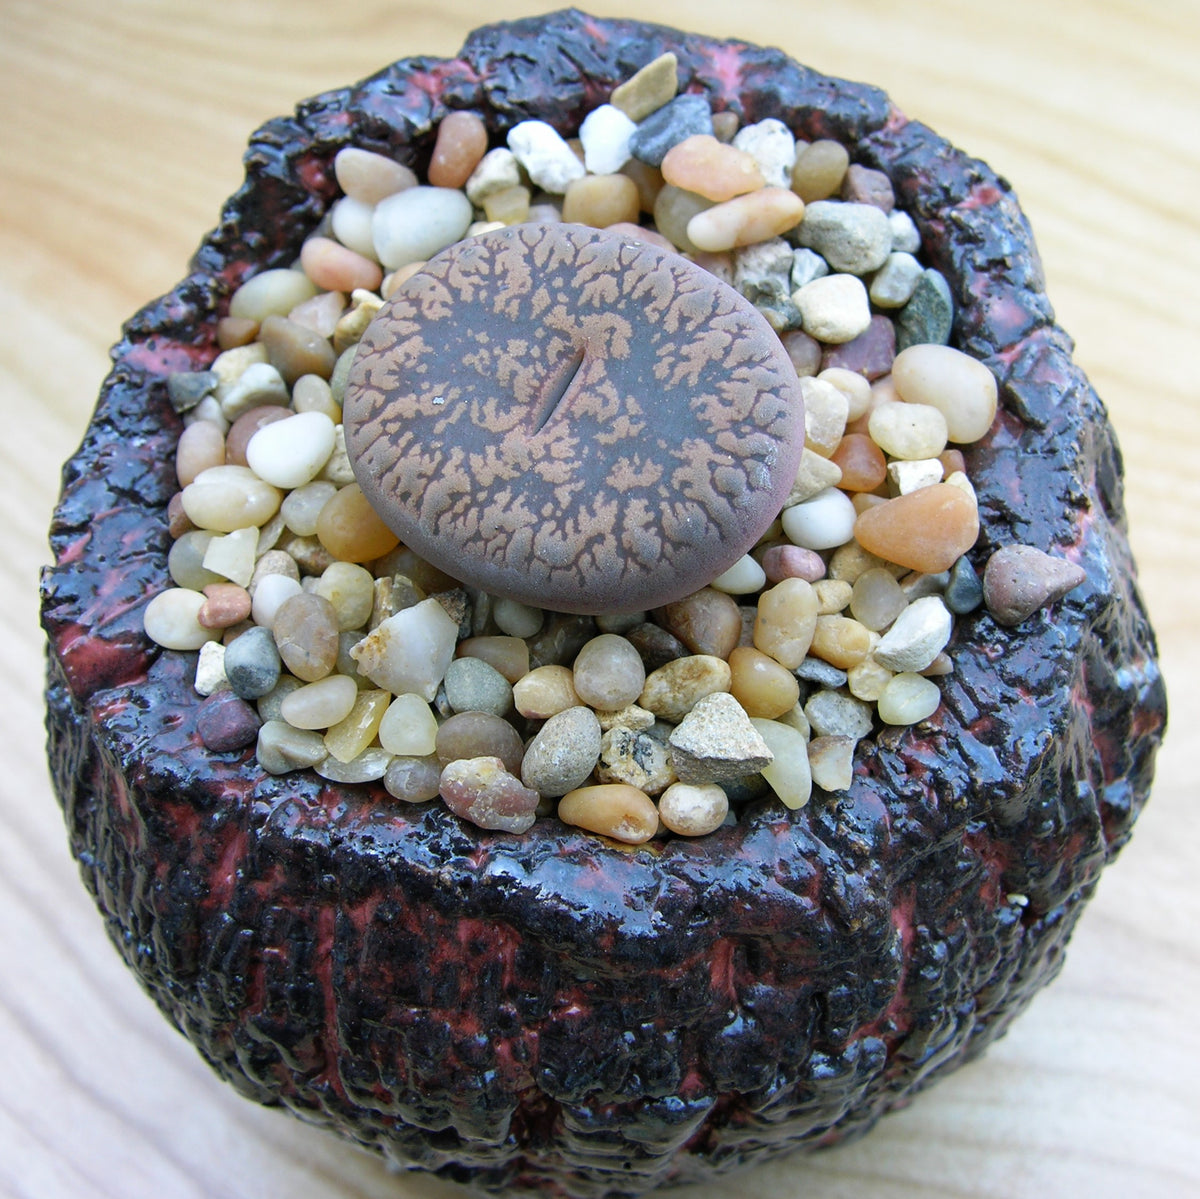 How to keep Lithops alive